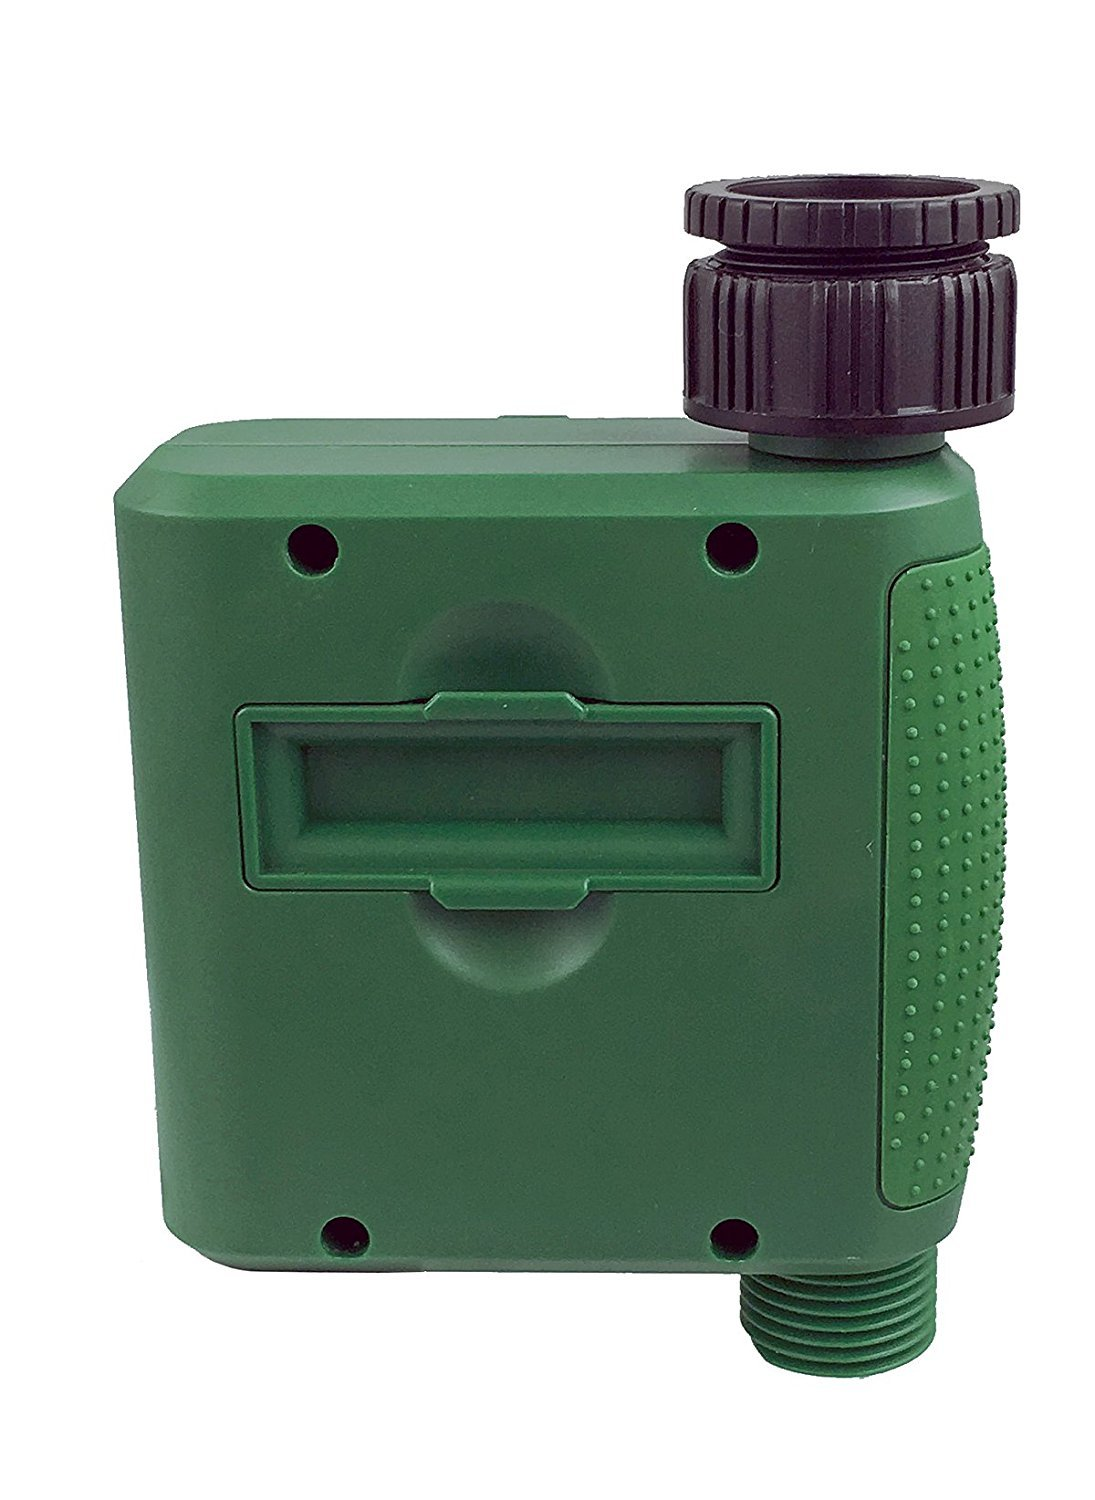 Instapark PWT-07 Outdoor Waterproof Digital Programmable Single Outlet Automatic On Off Water Faucet Hose Timer with Rain Delay and Manual Control by Instapark (Image #4)